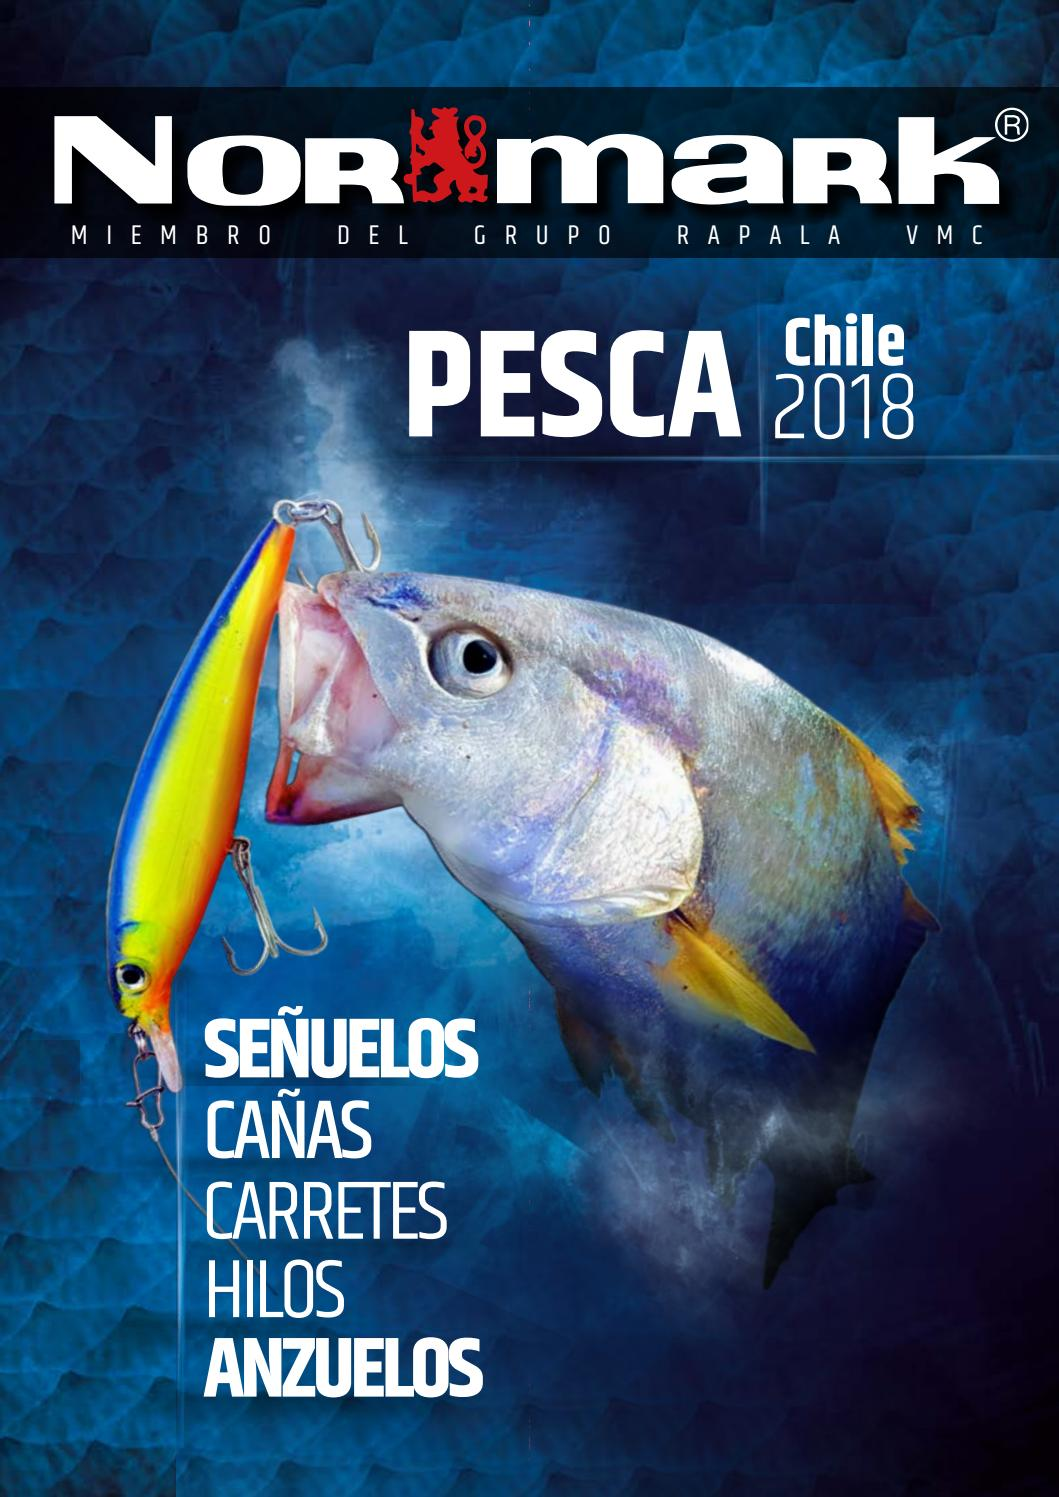 Catalogo Normark Chile Pesca 2018 by Normark Spain - issuu